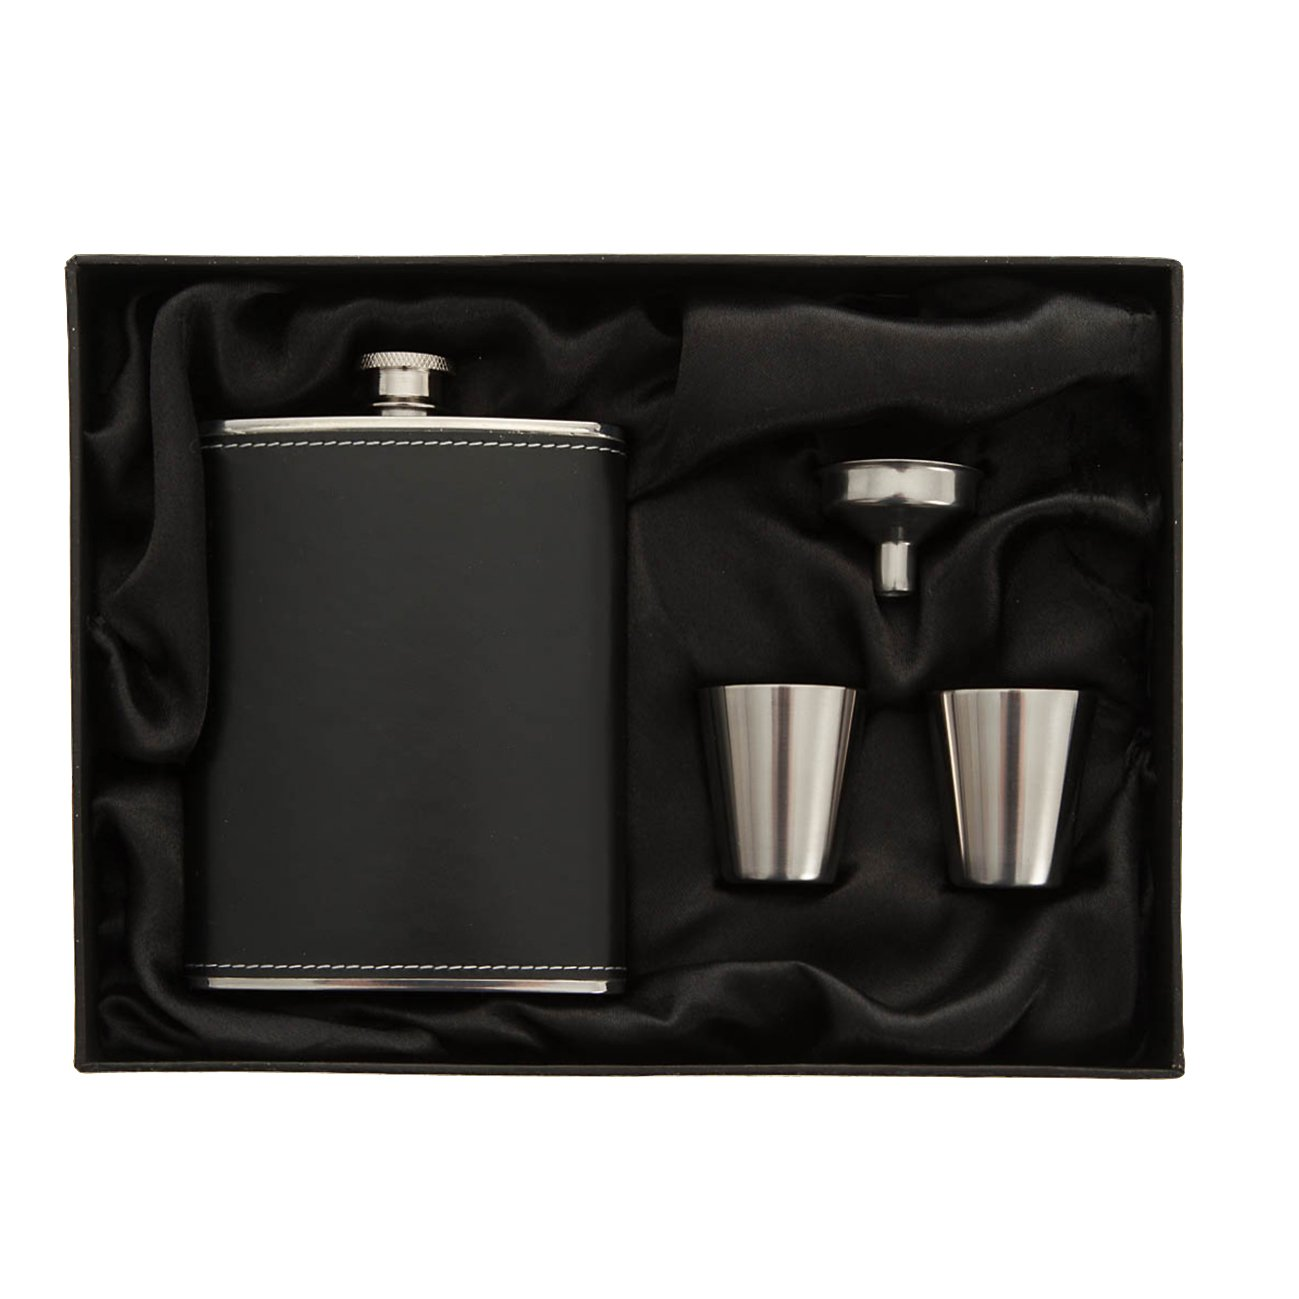 8oz Hip Flask Gift Set Premium Stainless Steel Leather Wrapped Hip Flask Two Shot Glasses And Funnel Set